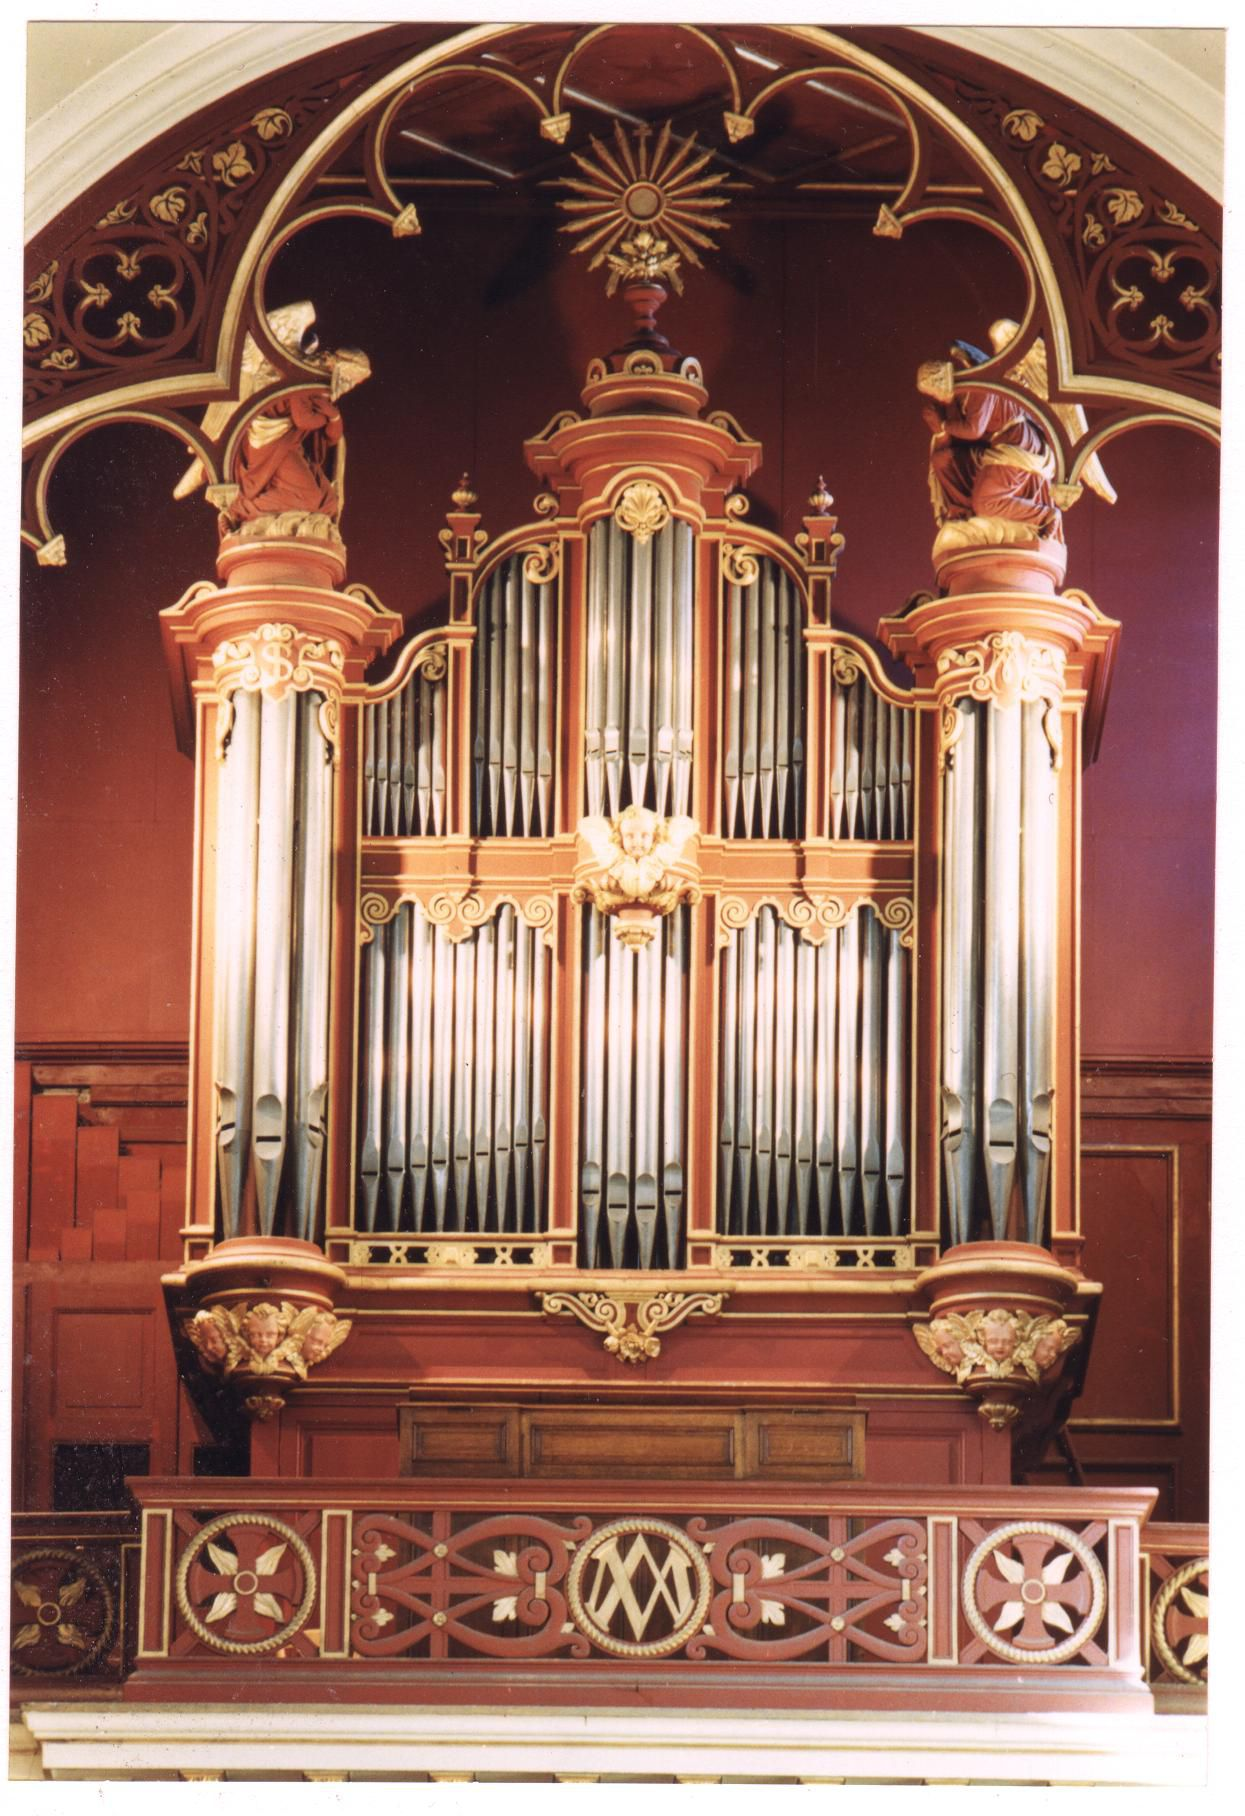 Grand Orgue Cavaillé-Coll-Mutin de 1870